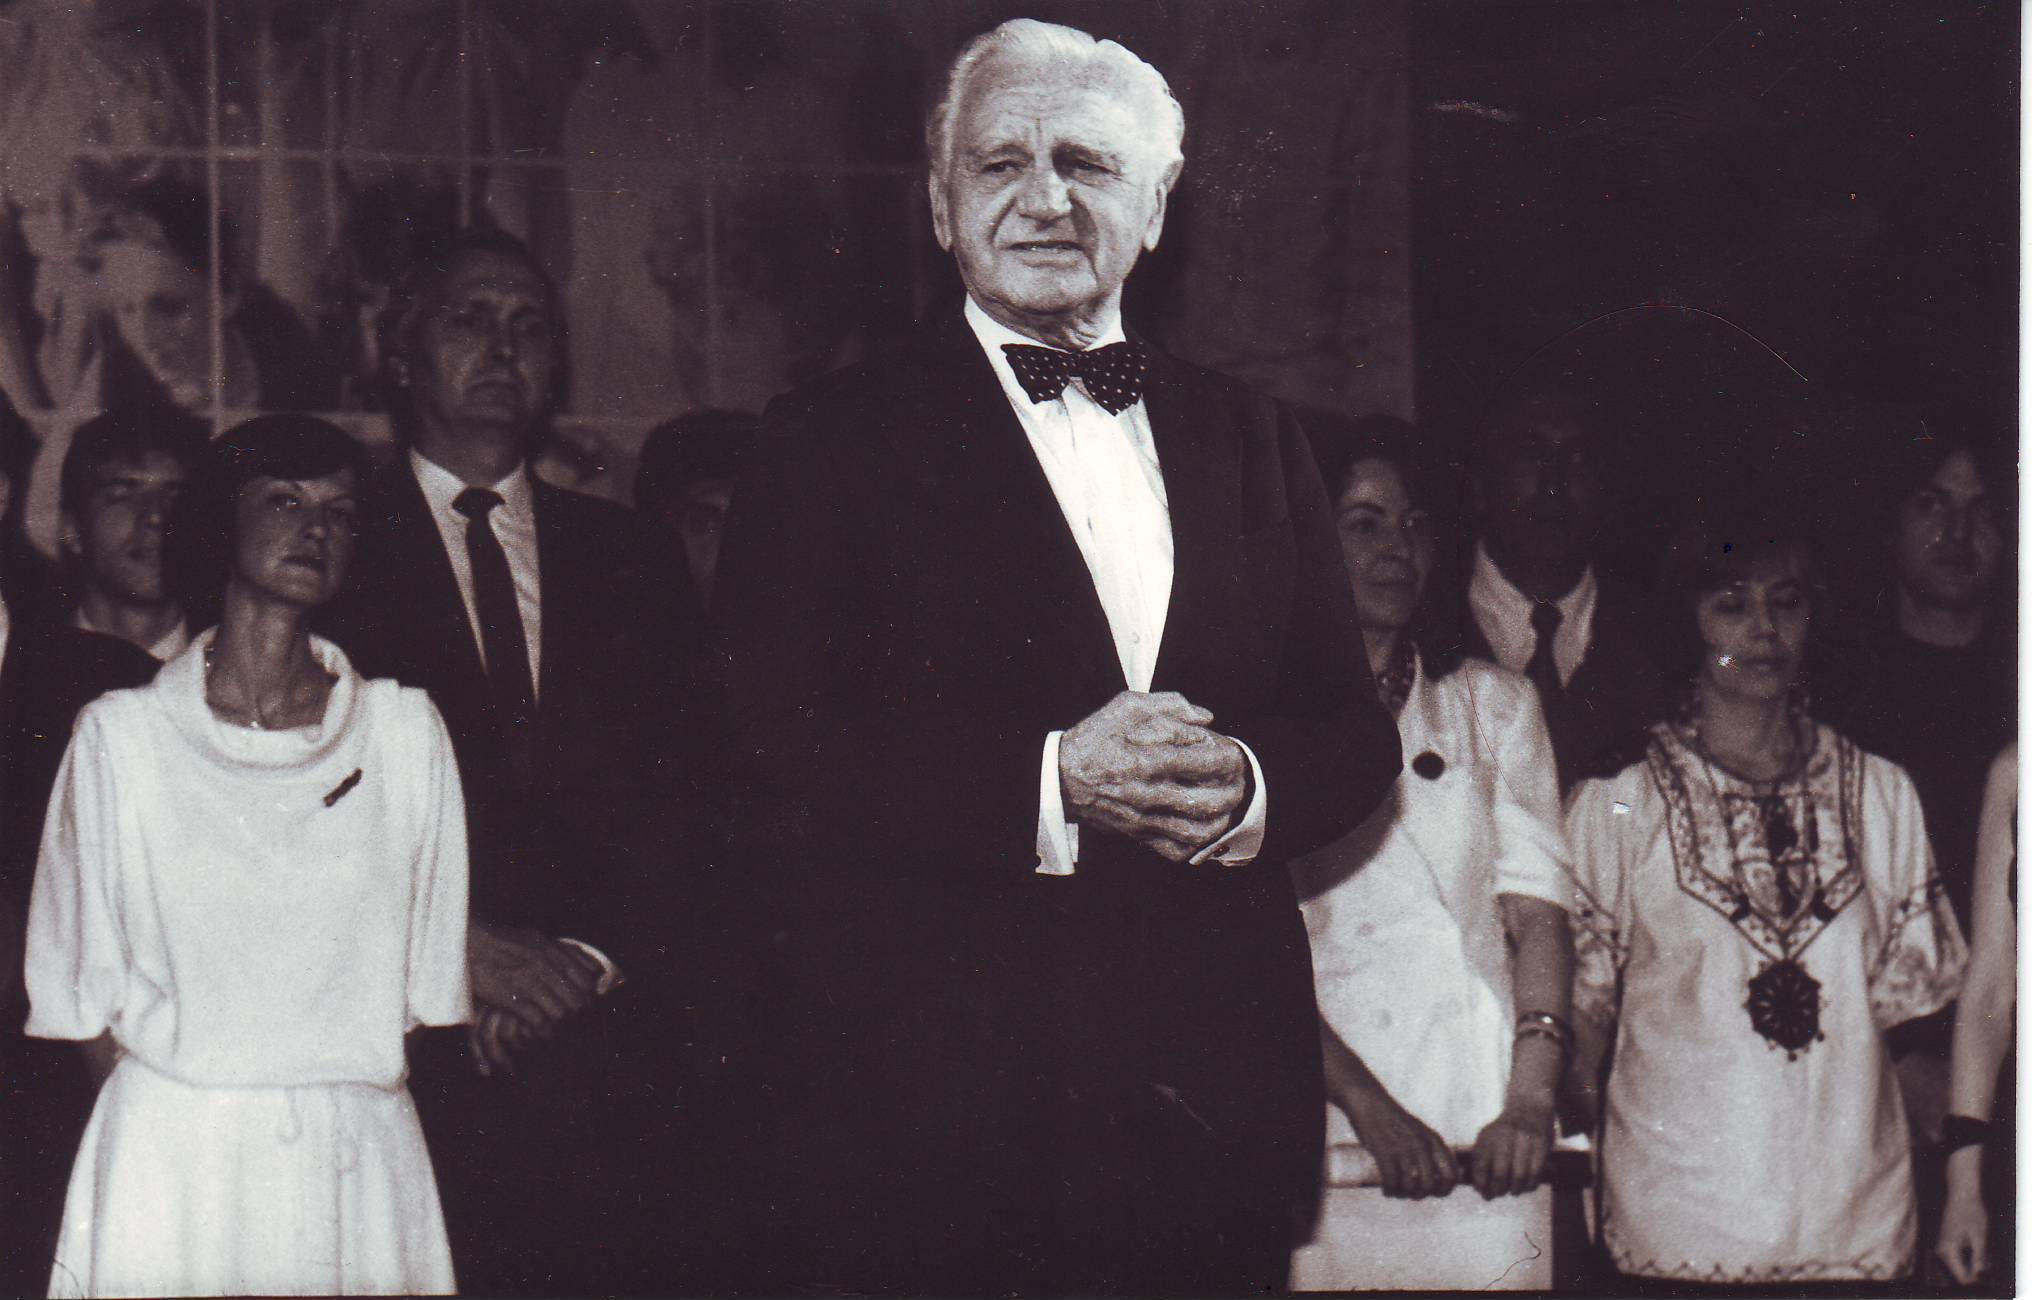 Ion Raţiu during 1980s